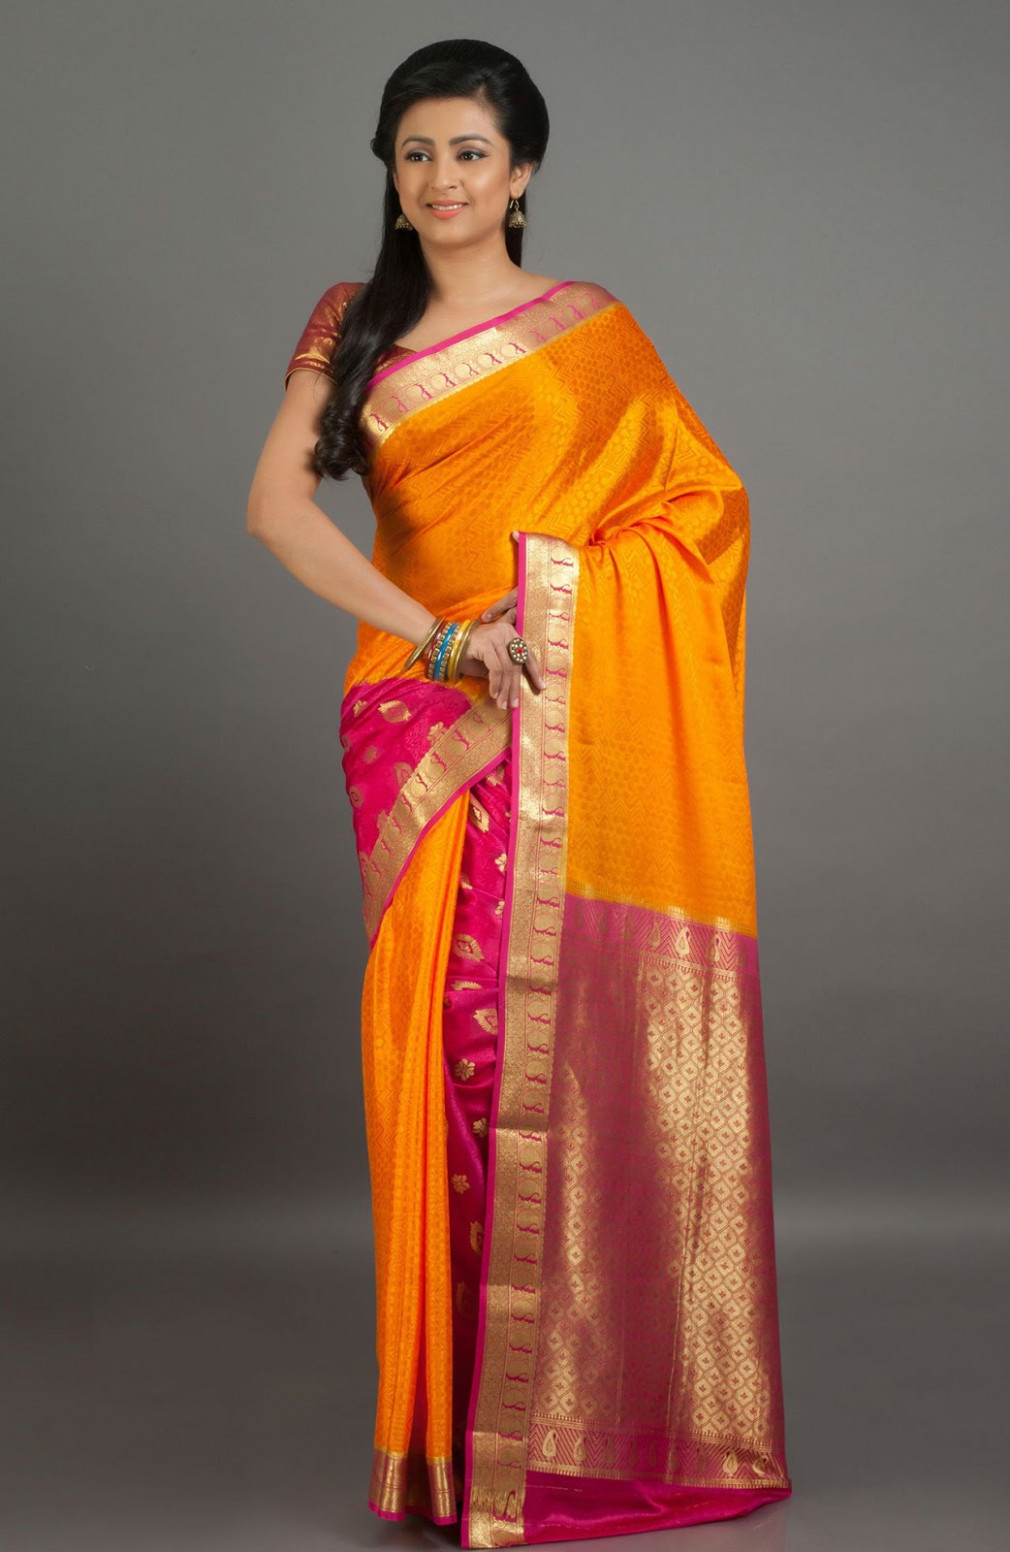 Saree Market: Pure Mysore Silk Saree Orange Colour